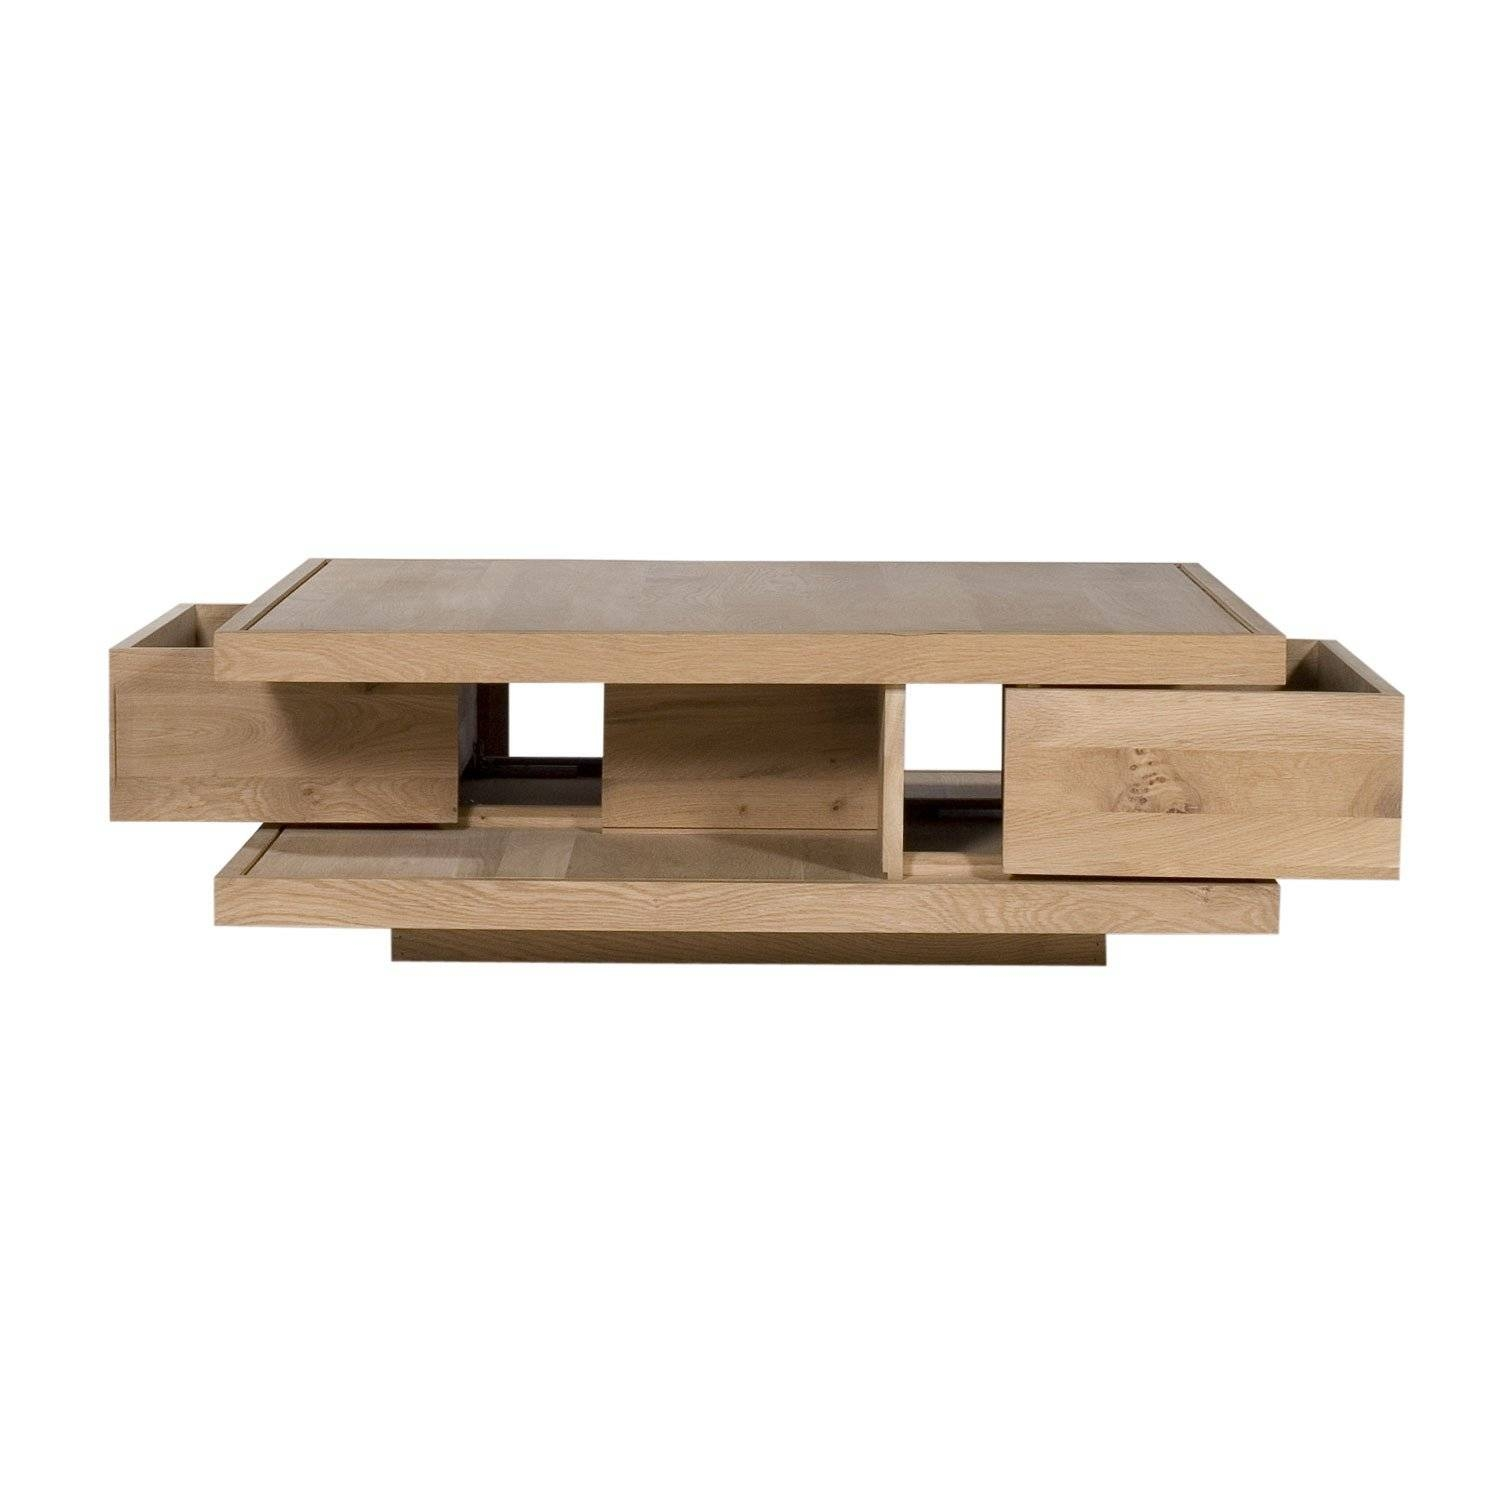 Ethnicraft Flat Oak Coffee Tables | Solid Wood Furniture throughout Contemporary Oak Coffee Table (Image 11 of 15)